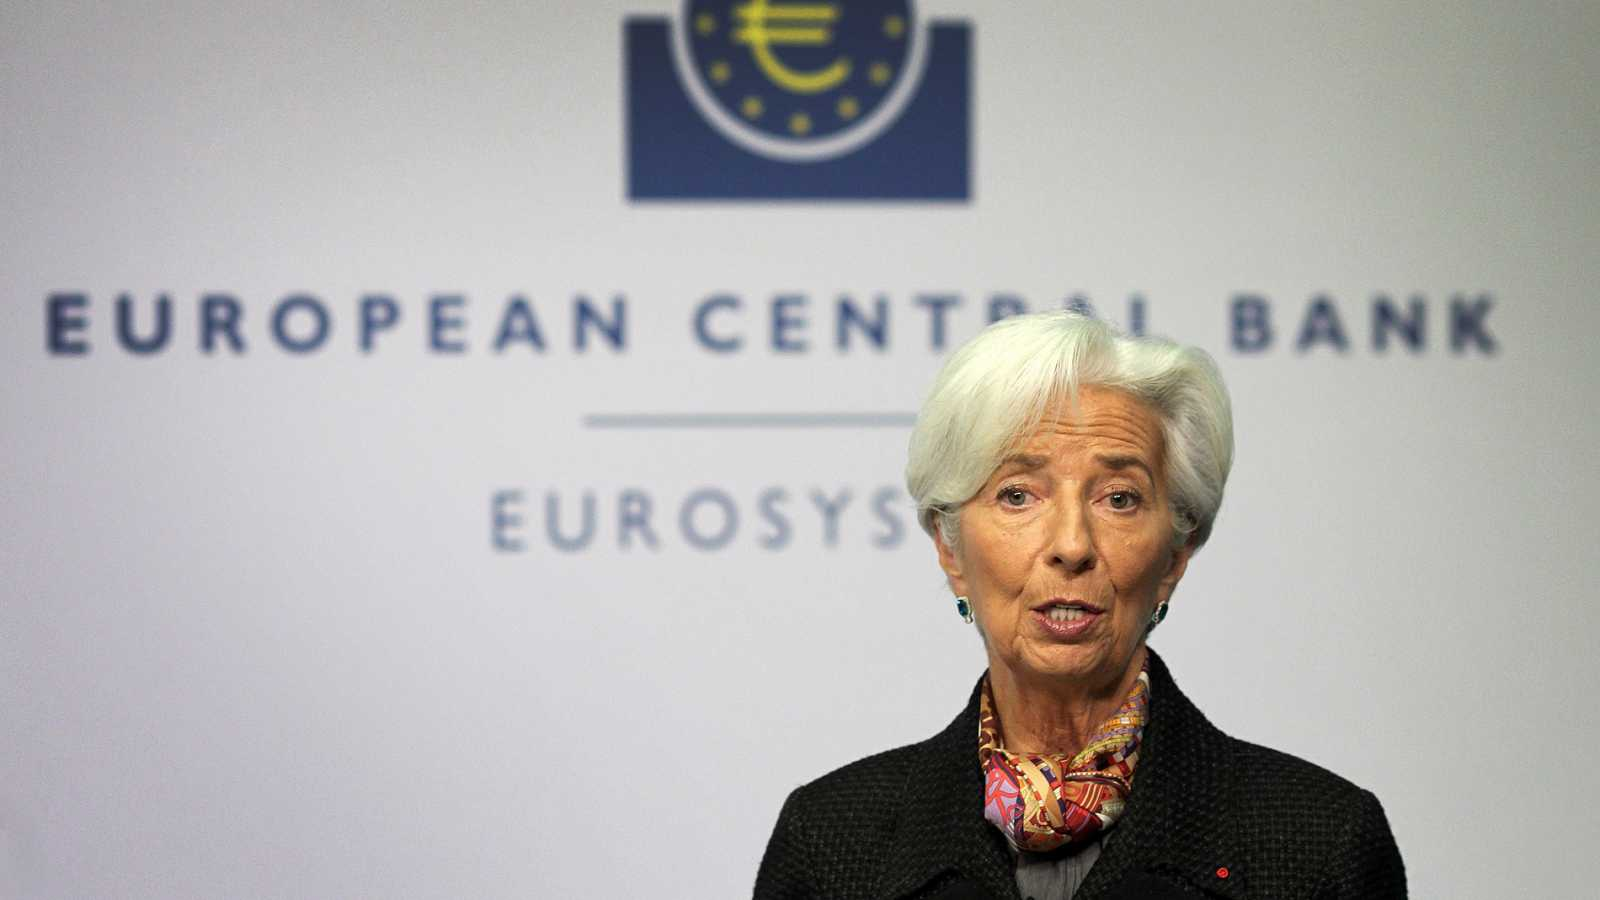 La directora del Banco Central Europeo, Christine Lagarde / RTVE.es